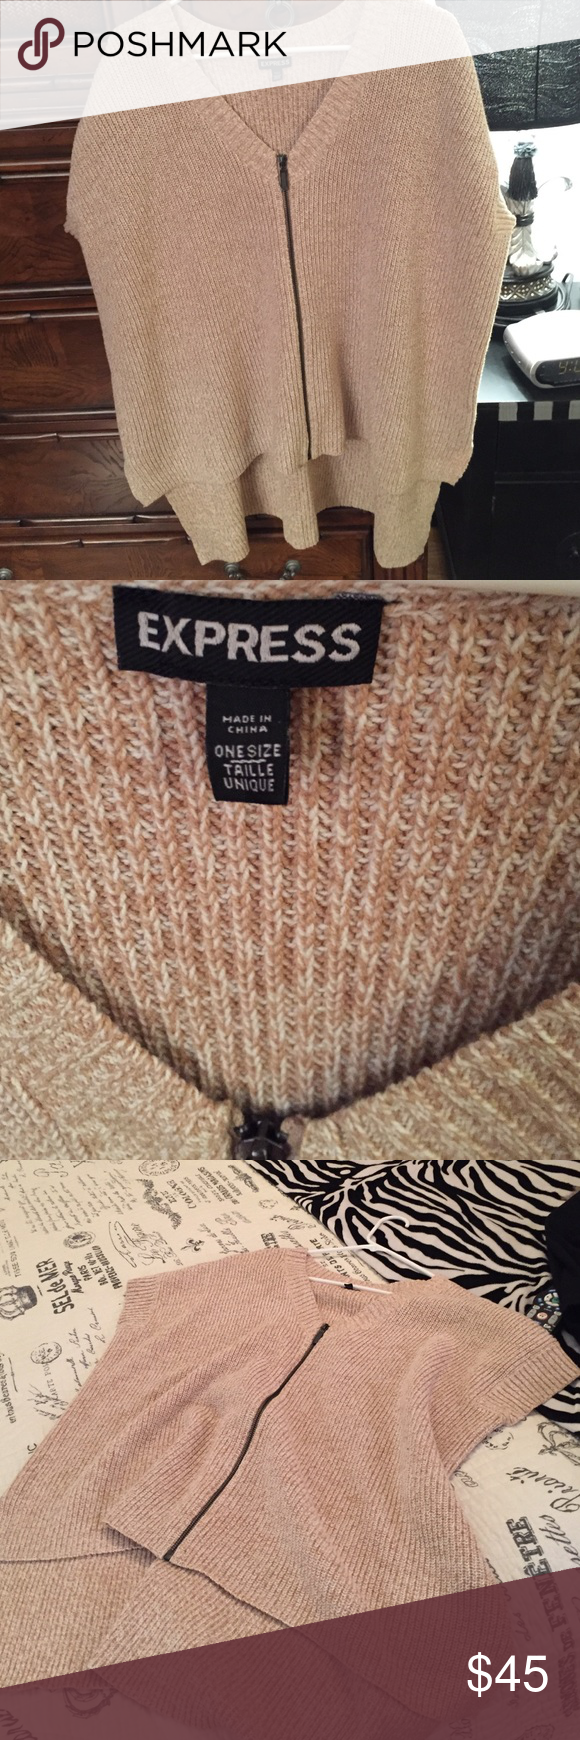 Brand new knit poncho Express oatmeal knit zip up poncho/ sweater wonderful layering piece for fall and it fits all sizes ... Express Jackets & Coats Capes